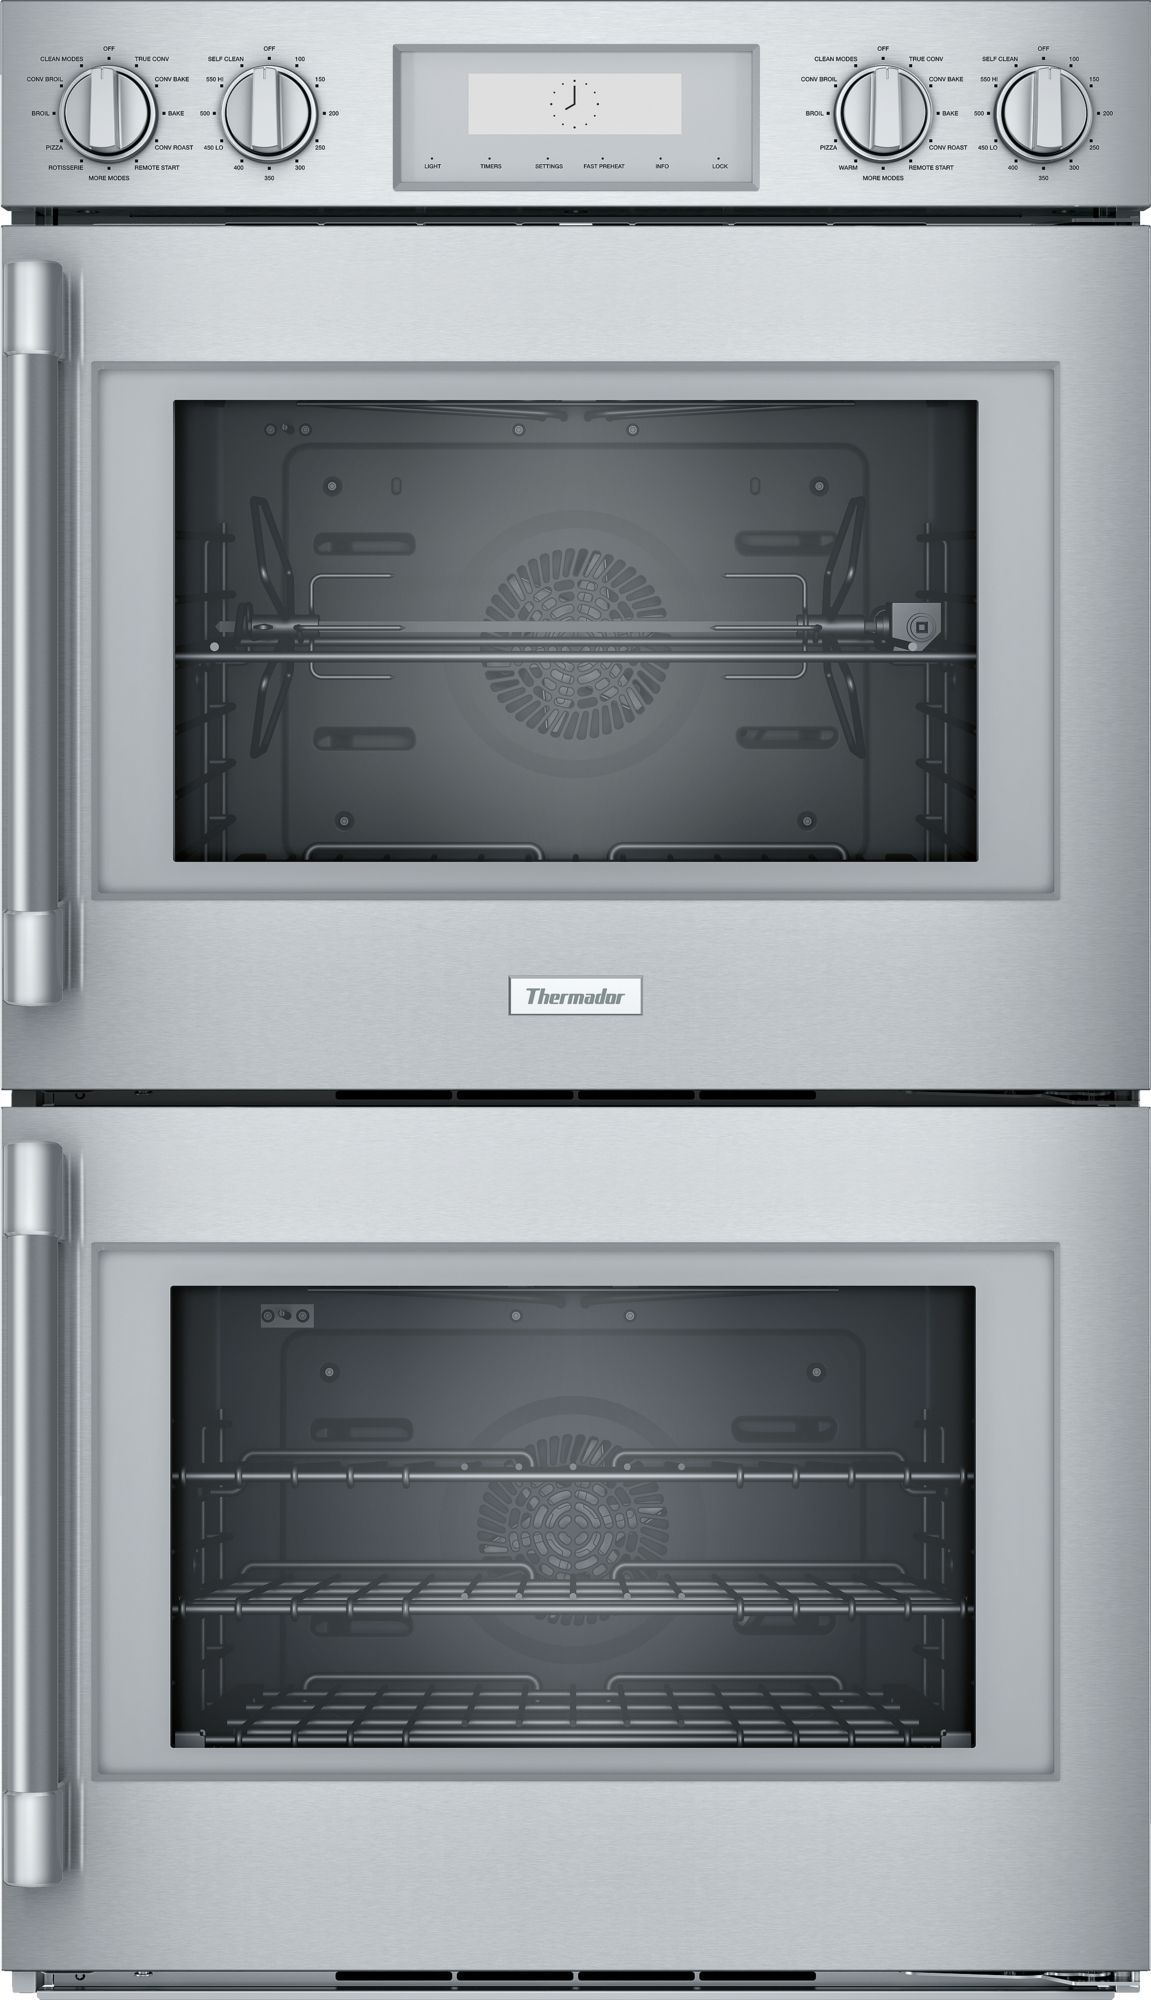 30 Inch Professional Double Wall Oven With Right Side Opening Door Pod302rw Thermador Wall Oven Double Wall Oven Double Oven